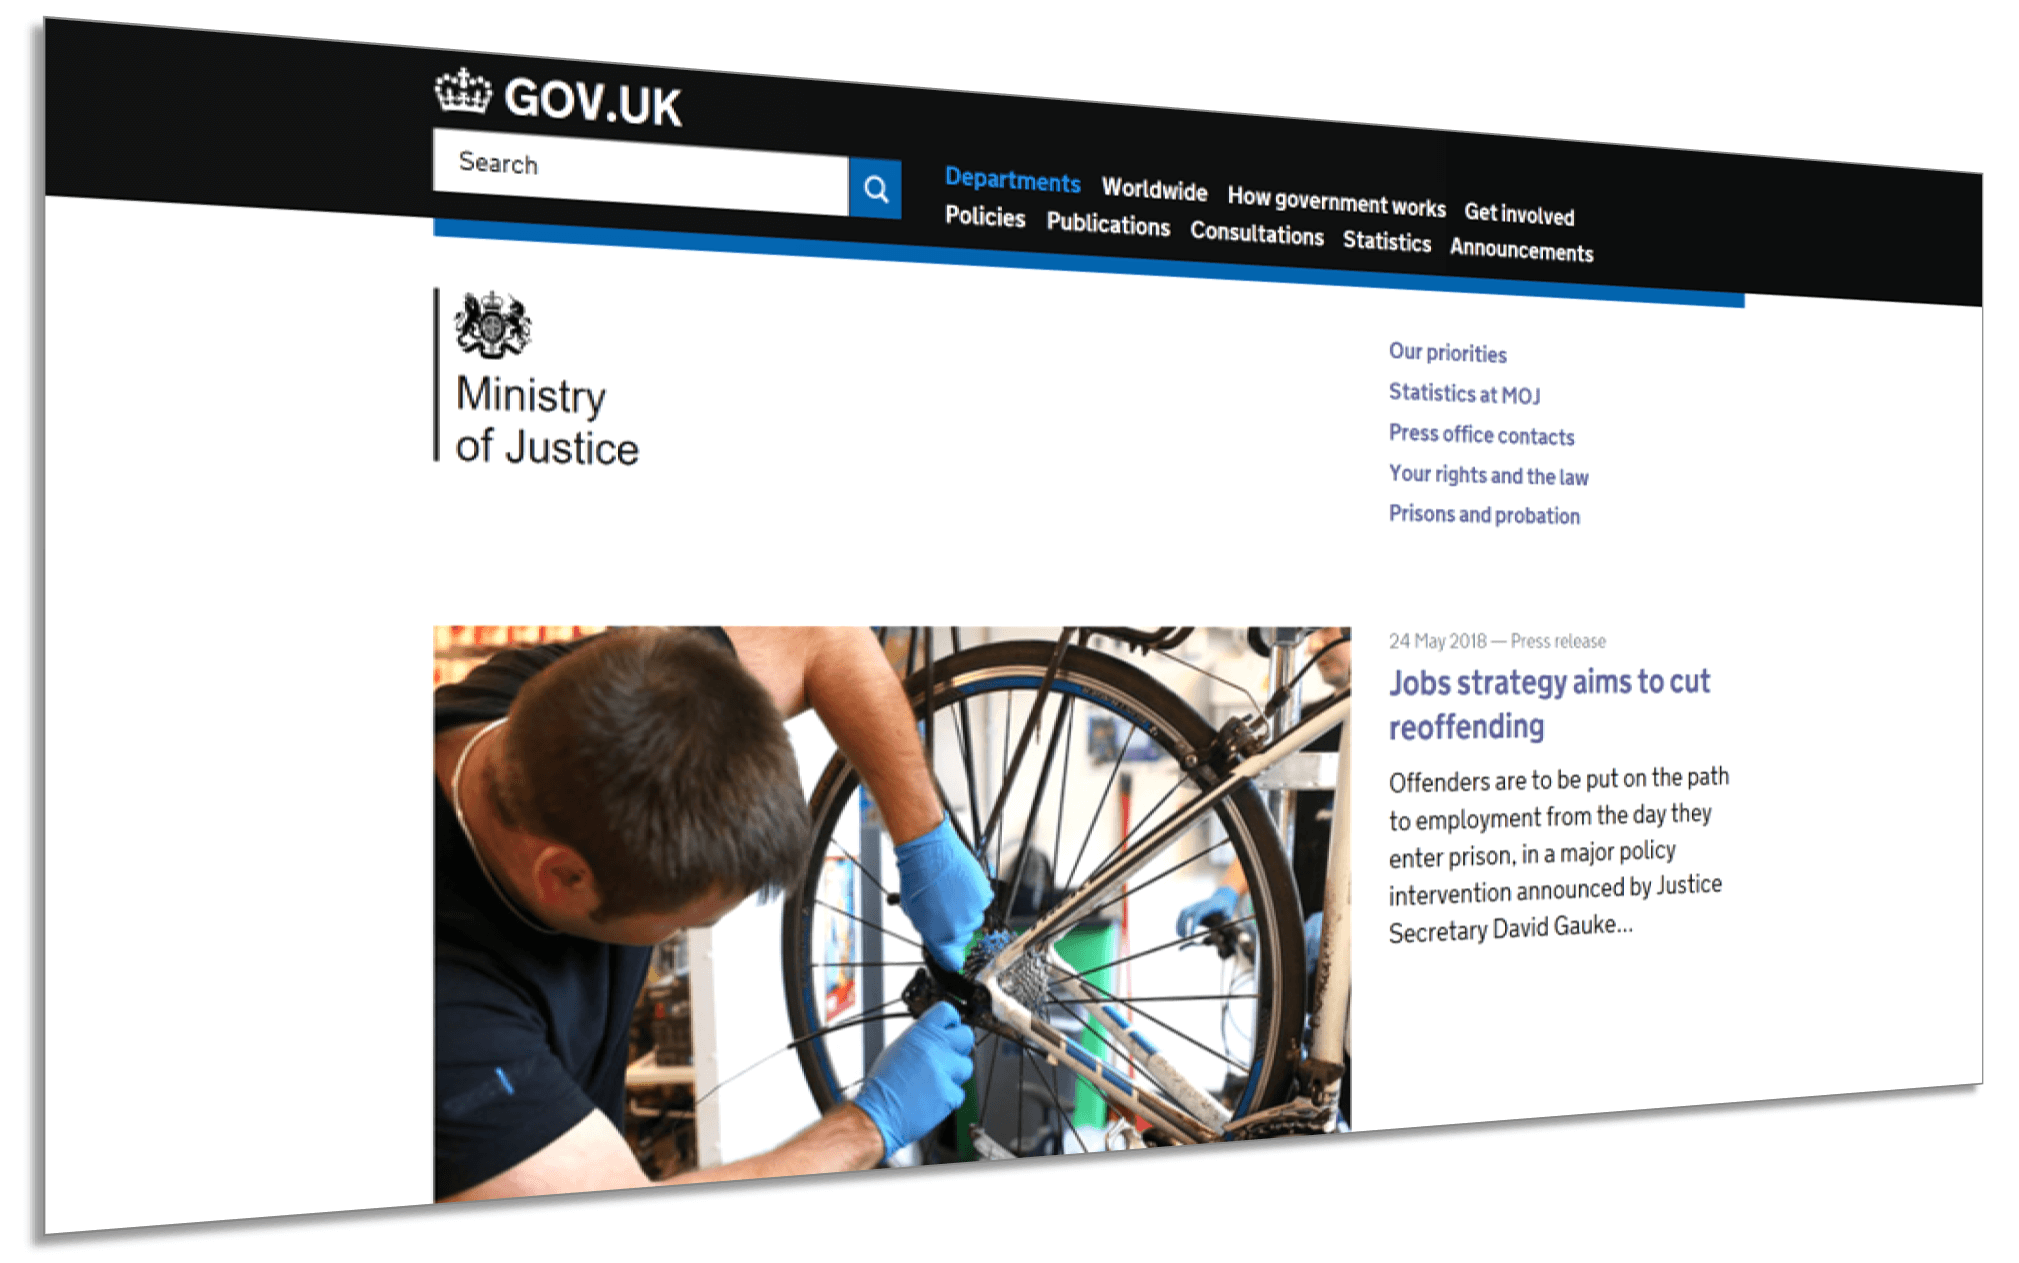 Emsi's Role in the Government's New Education and Employment